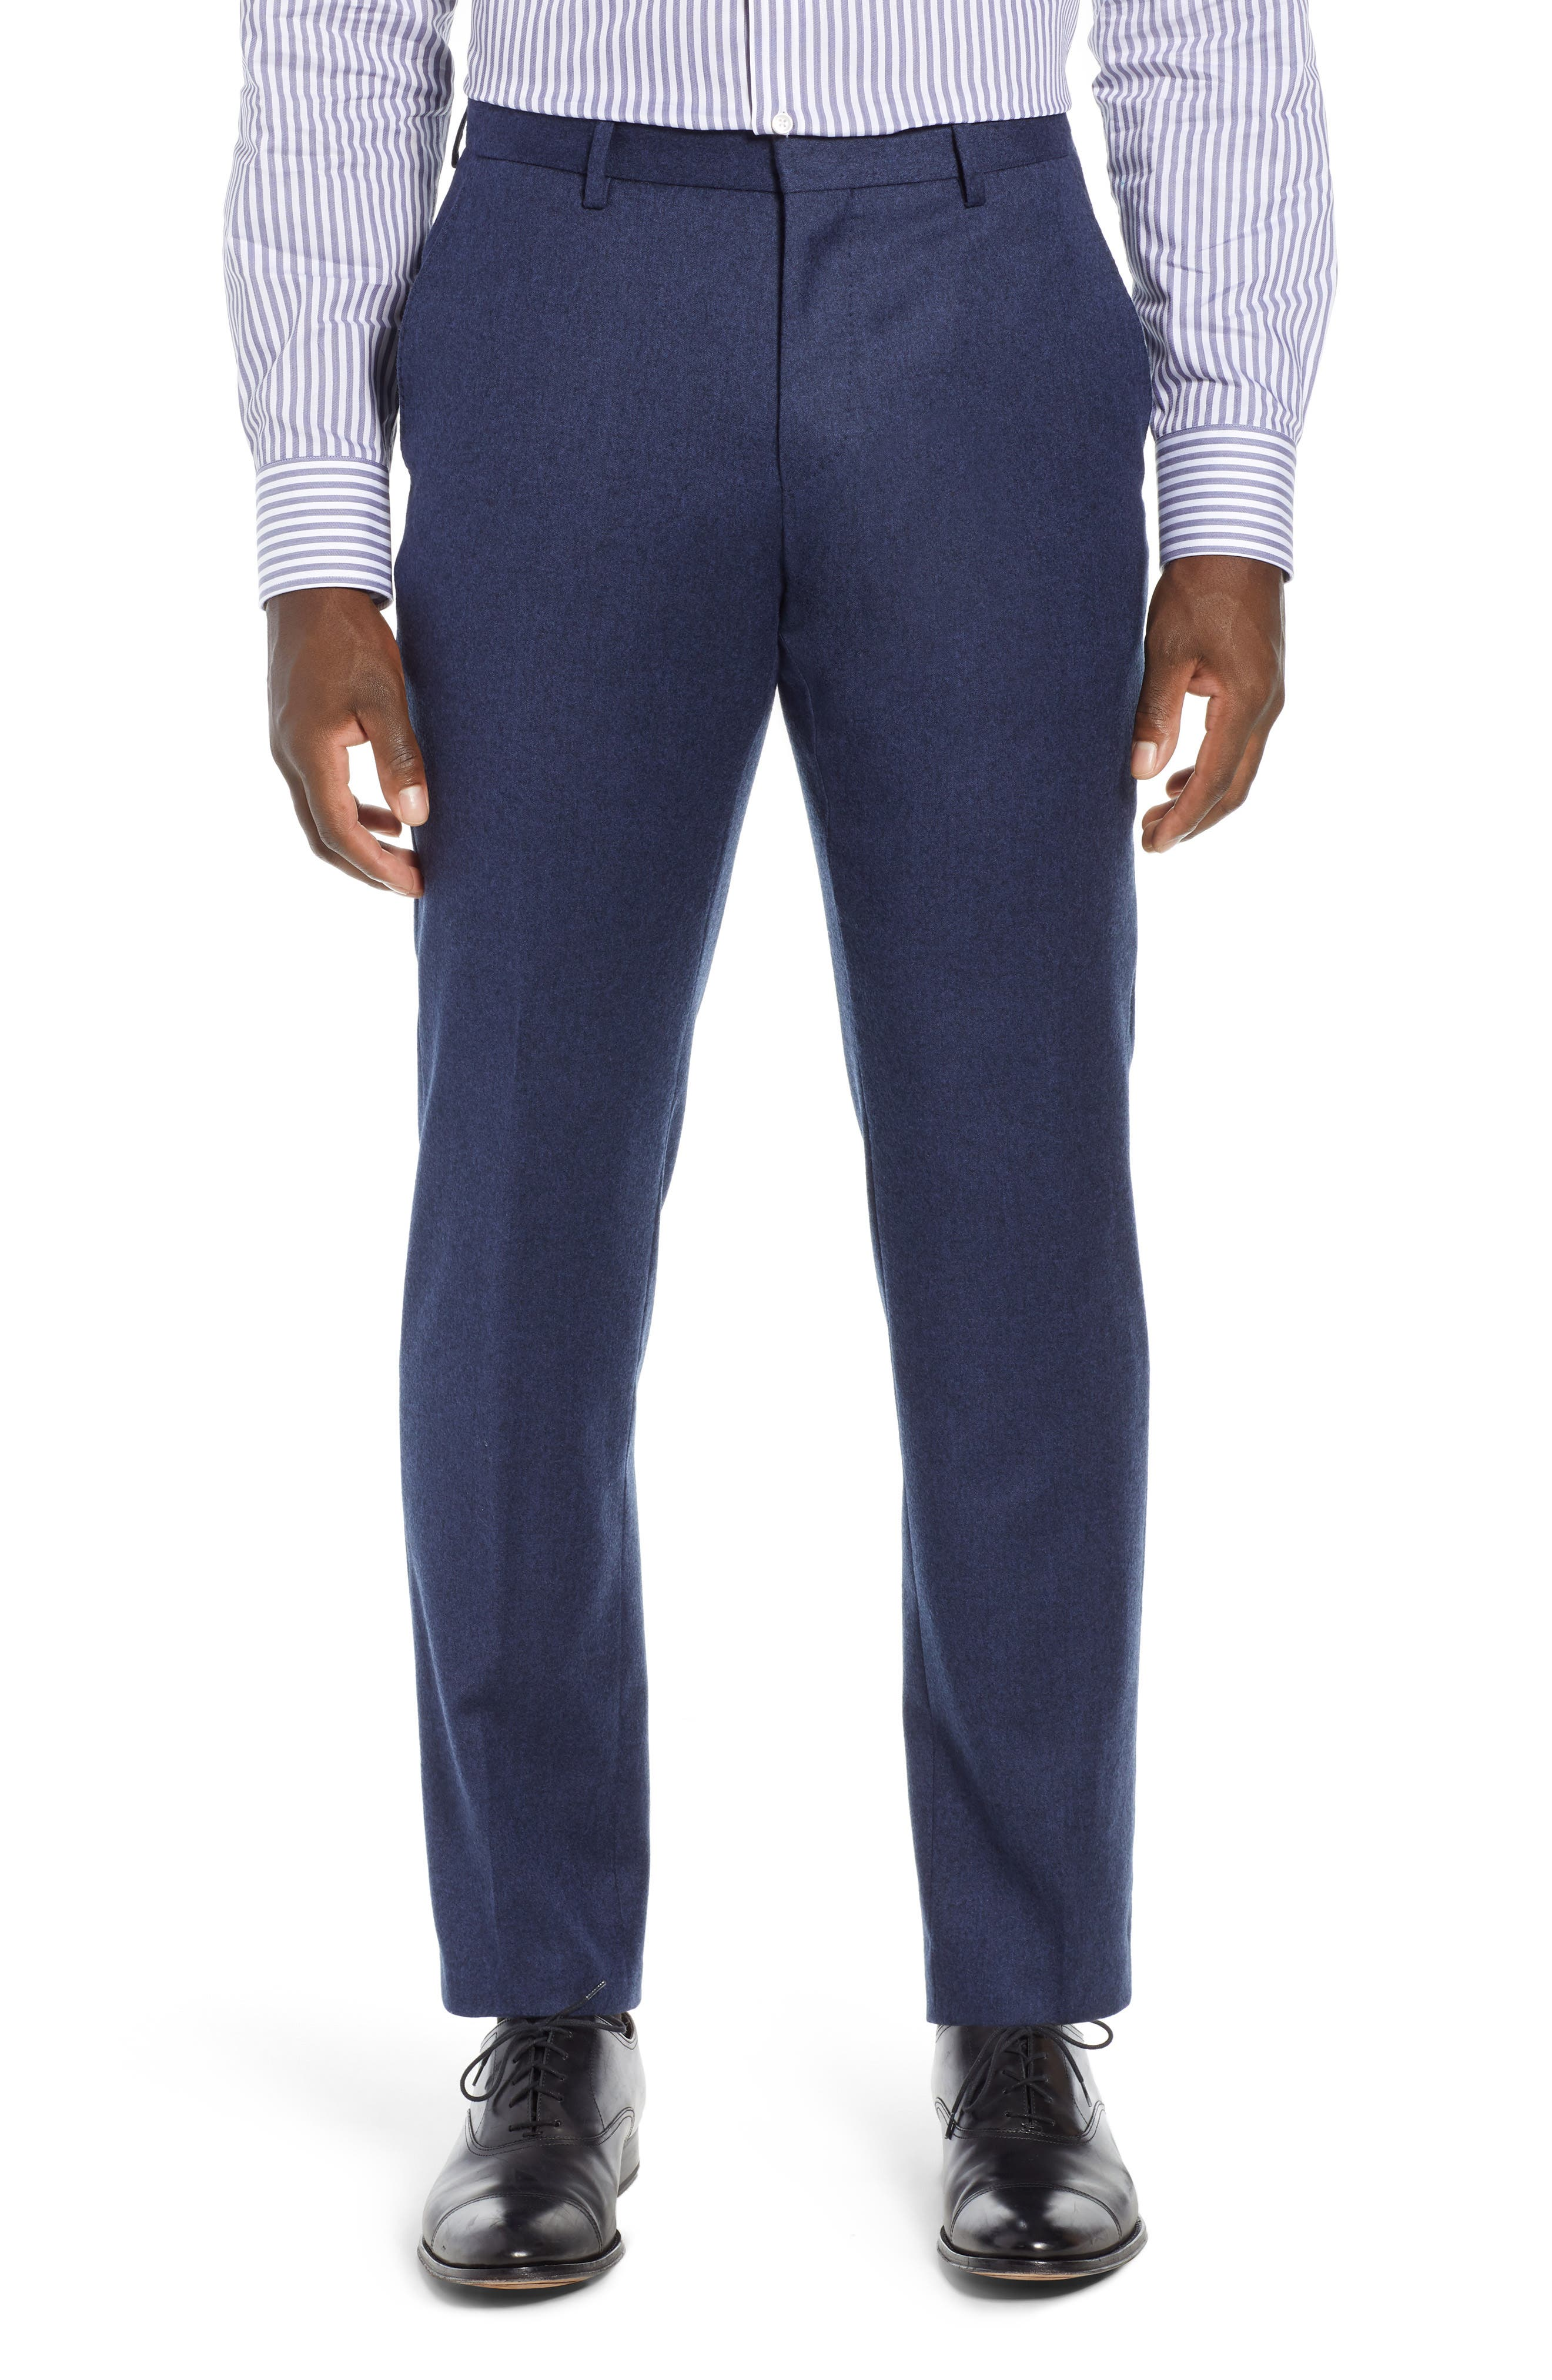 Gains Flat Front Solid Wool Trousers,                             Main thumbnail 1, color,                             DARK BLUE